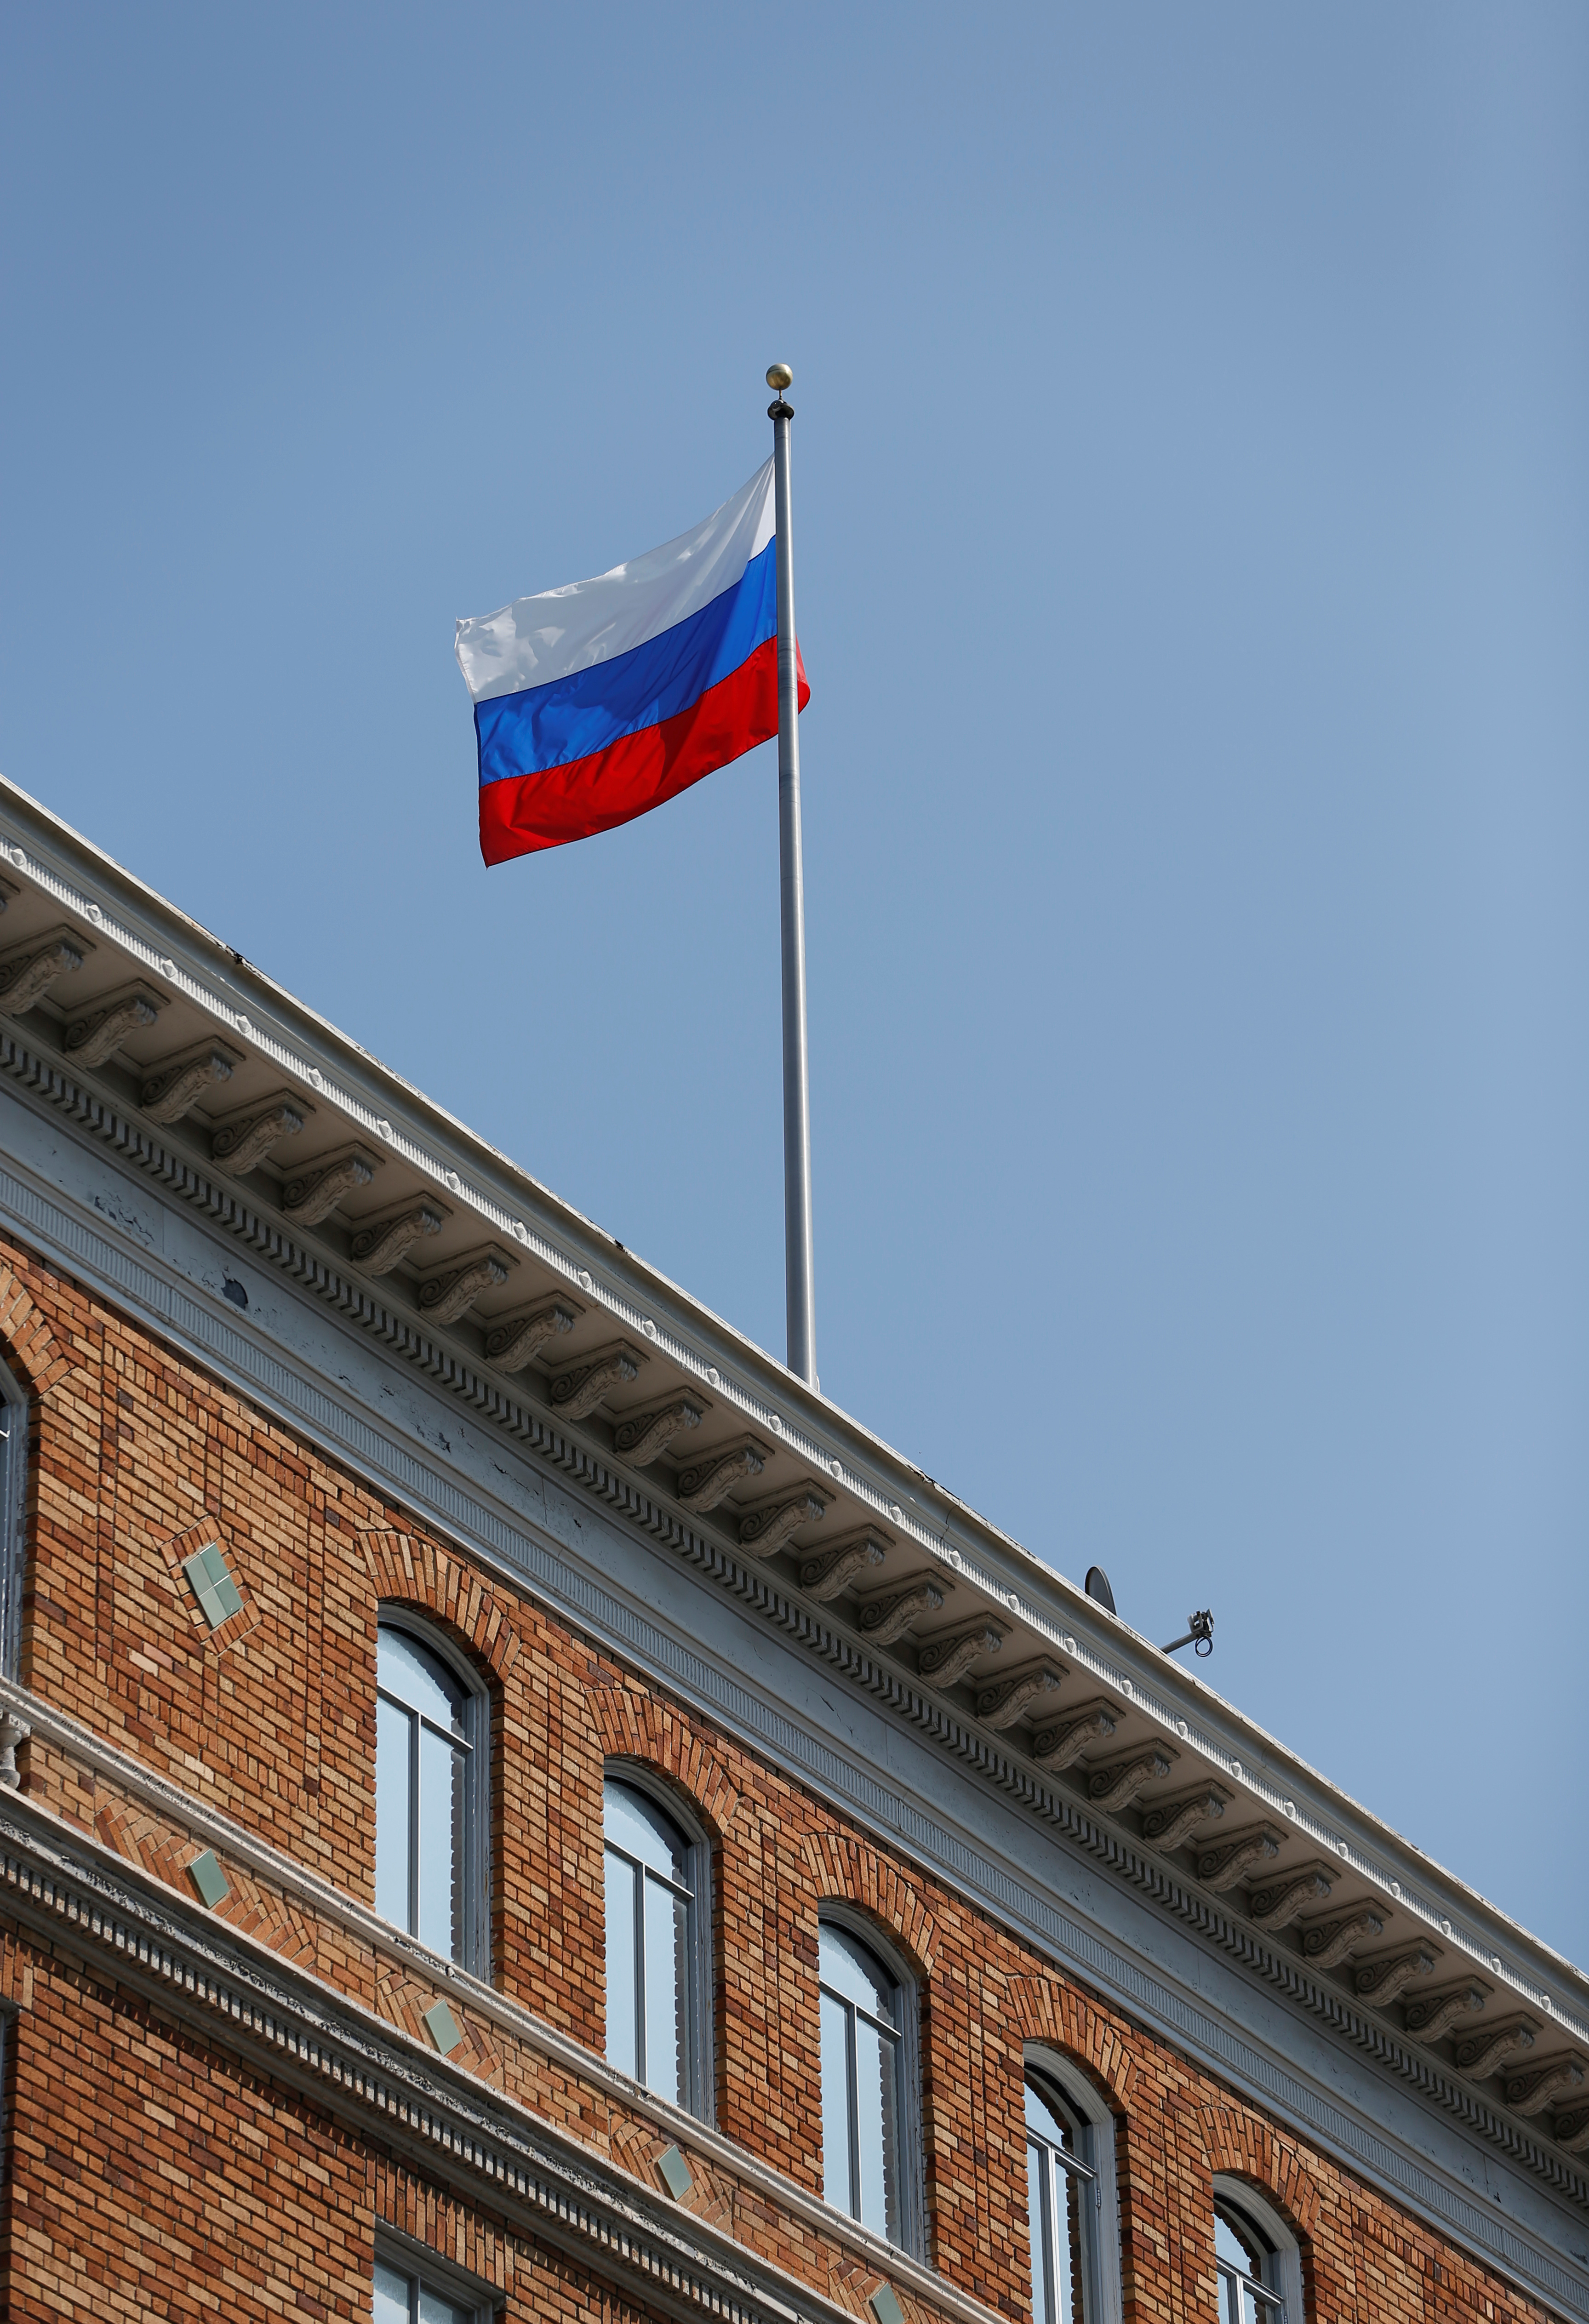 The Russian flag waves in the wind on the rooftop of the Consulate General of Russia in San Francisco, Calif. on Aug. 31, 2017.   (REUTERS/Stephen Lam)